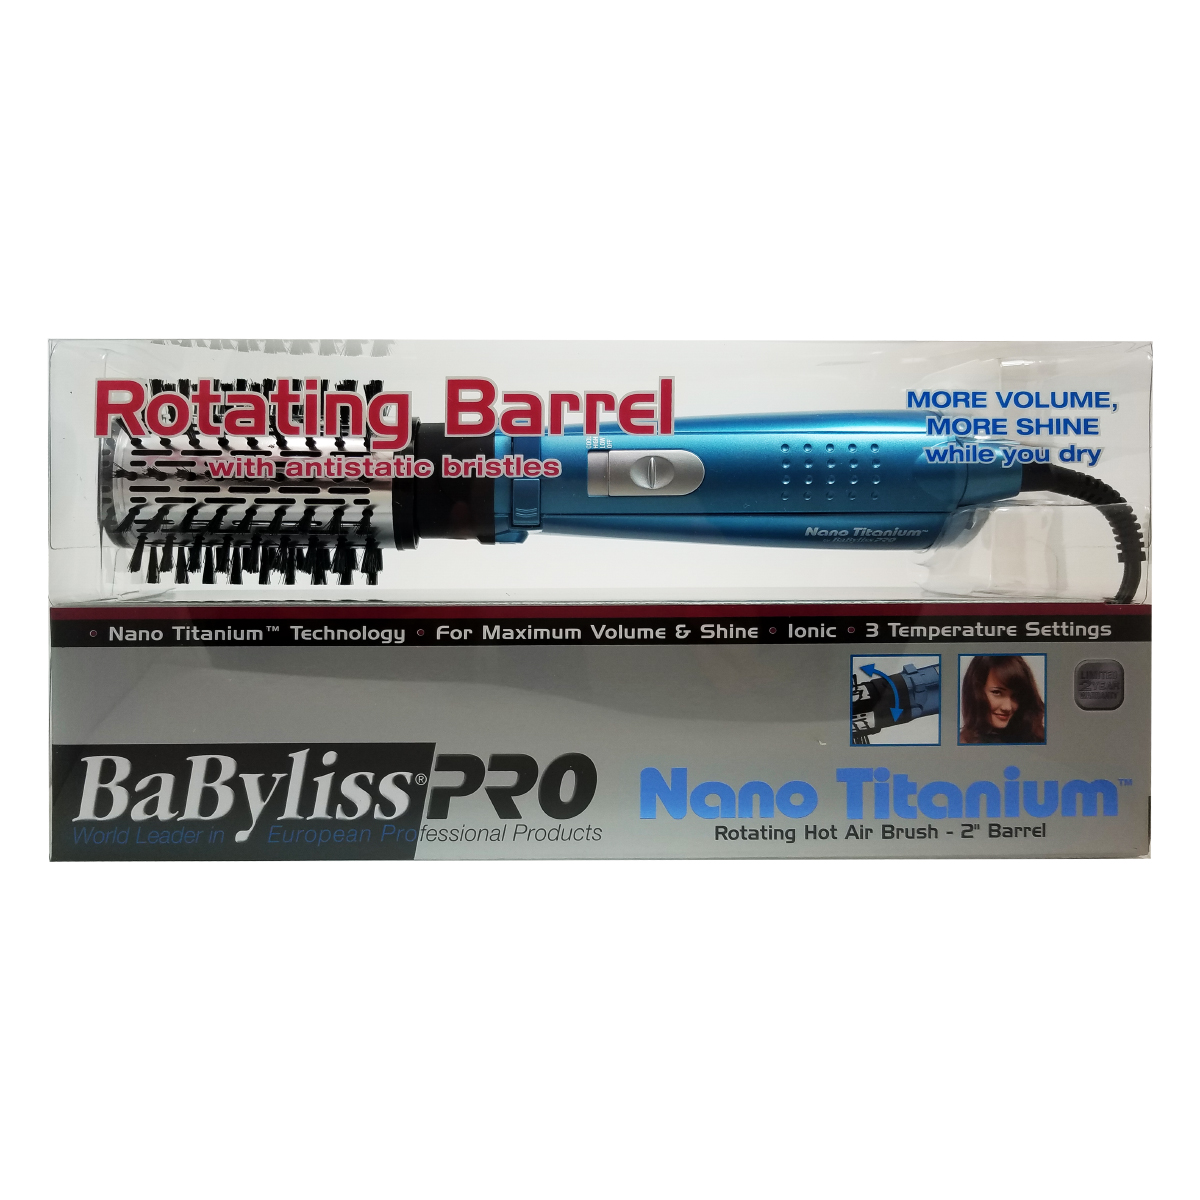 "Babyliss Pro nano titanium 2"" rotating hot air brush"